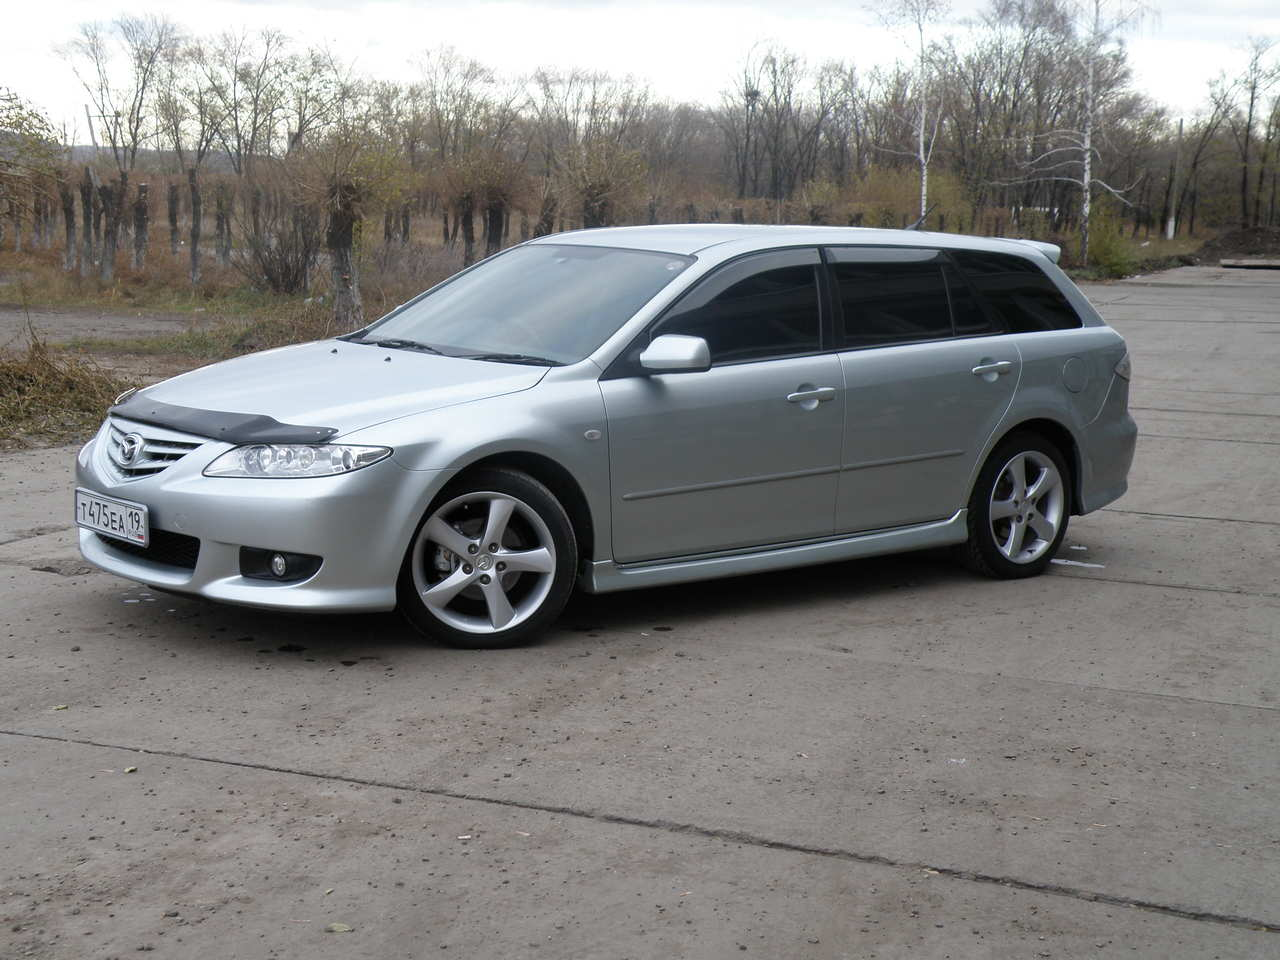 http://www.cars-directory.net/pics/mazda/atenza_sport_wagon/2003/mazda_atenza_sport_wagon_a1253431810b3039823_3_orig.jpg